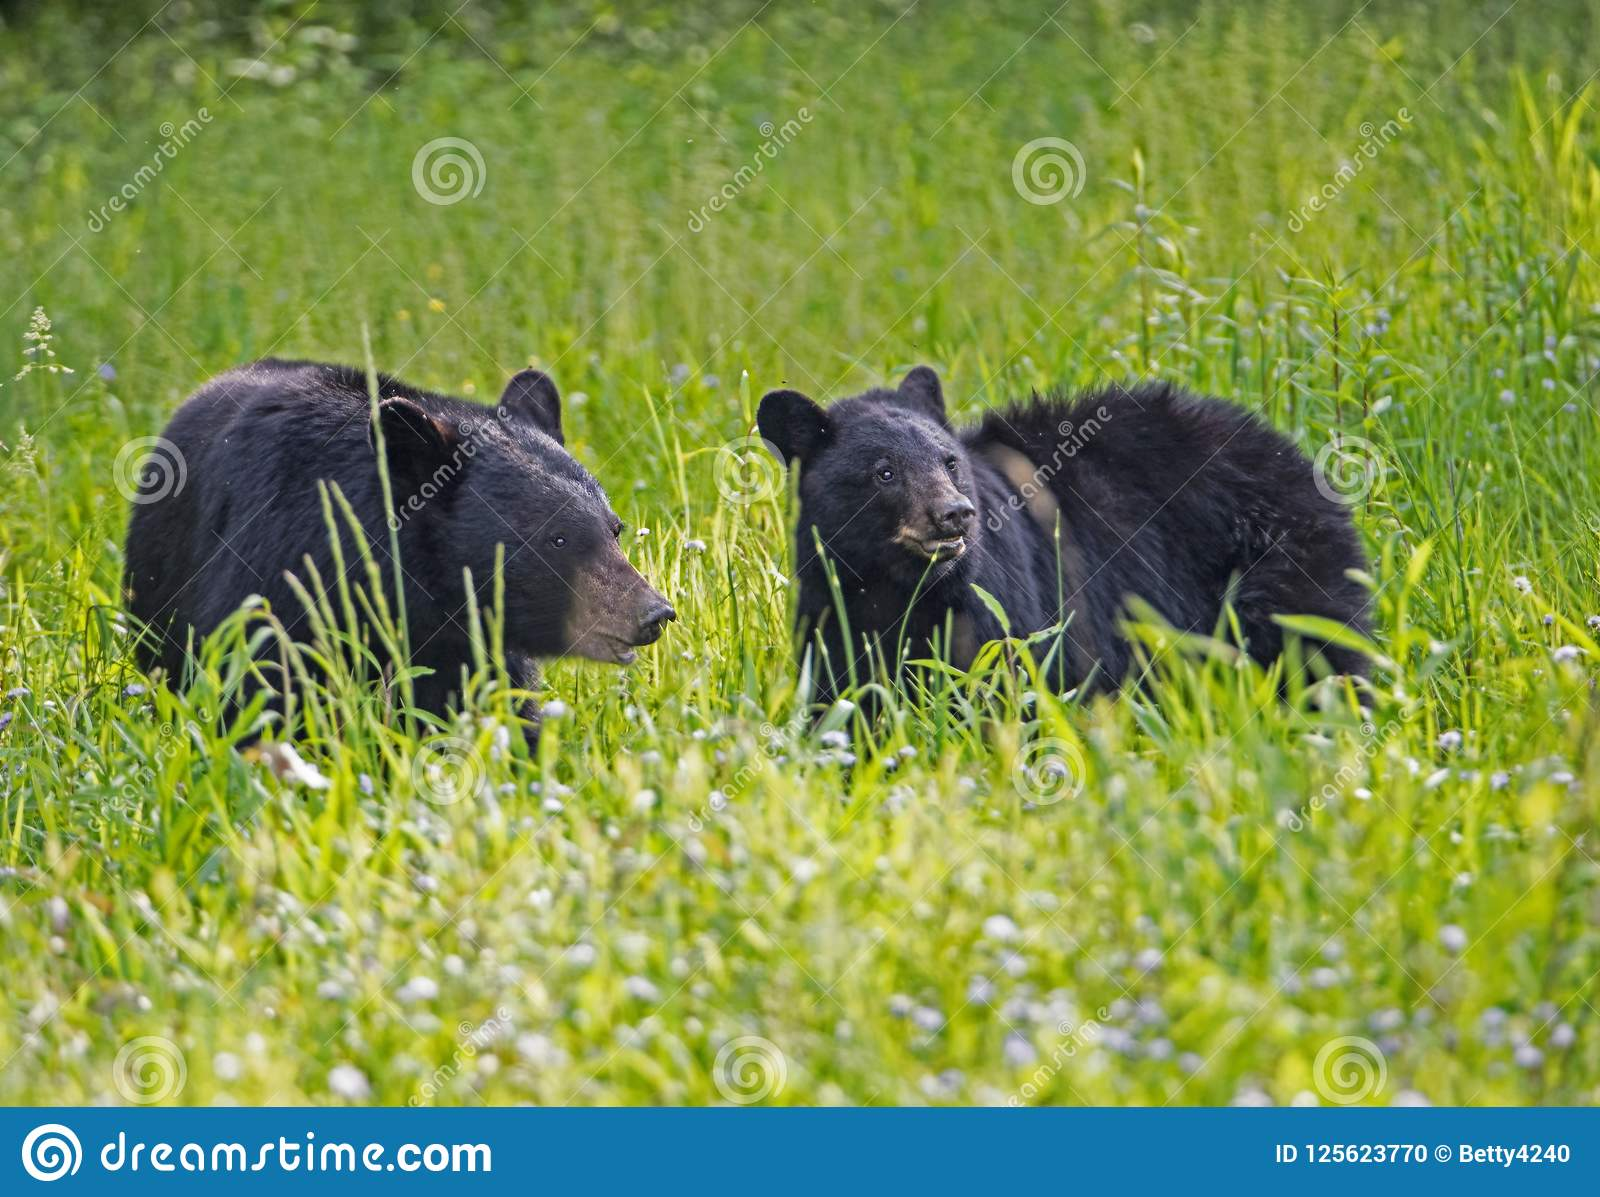 Two Black Bears Eating Green Grass In A Field Of Greenery. Stock Photo - Image of cove, female ...